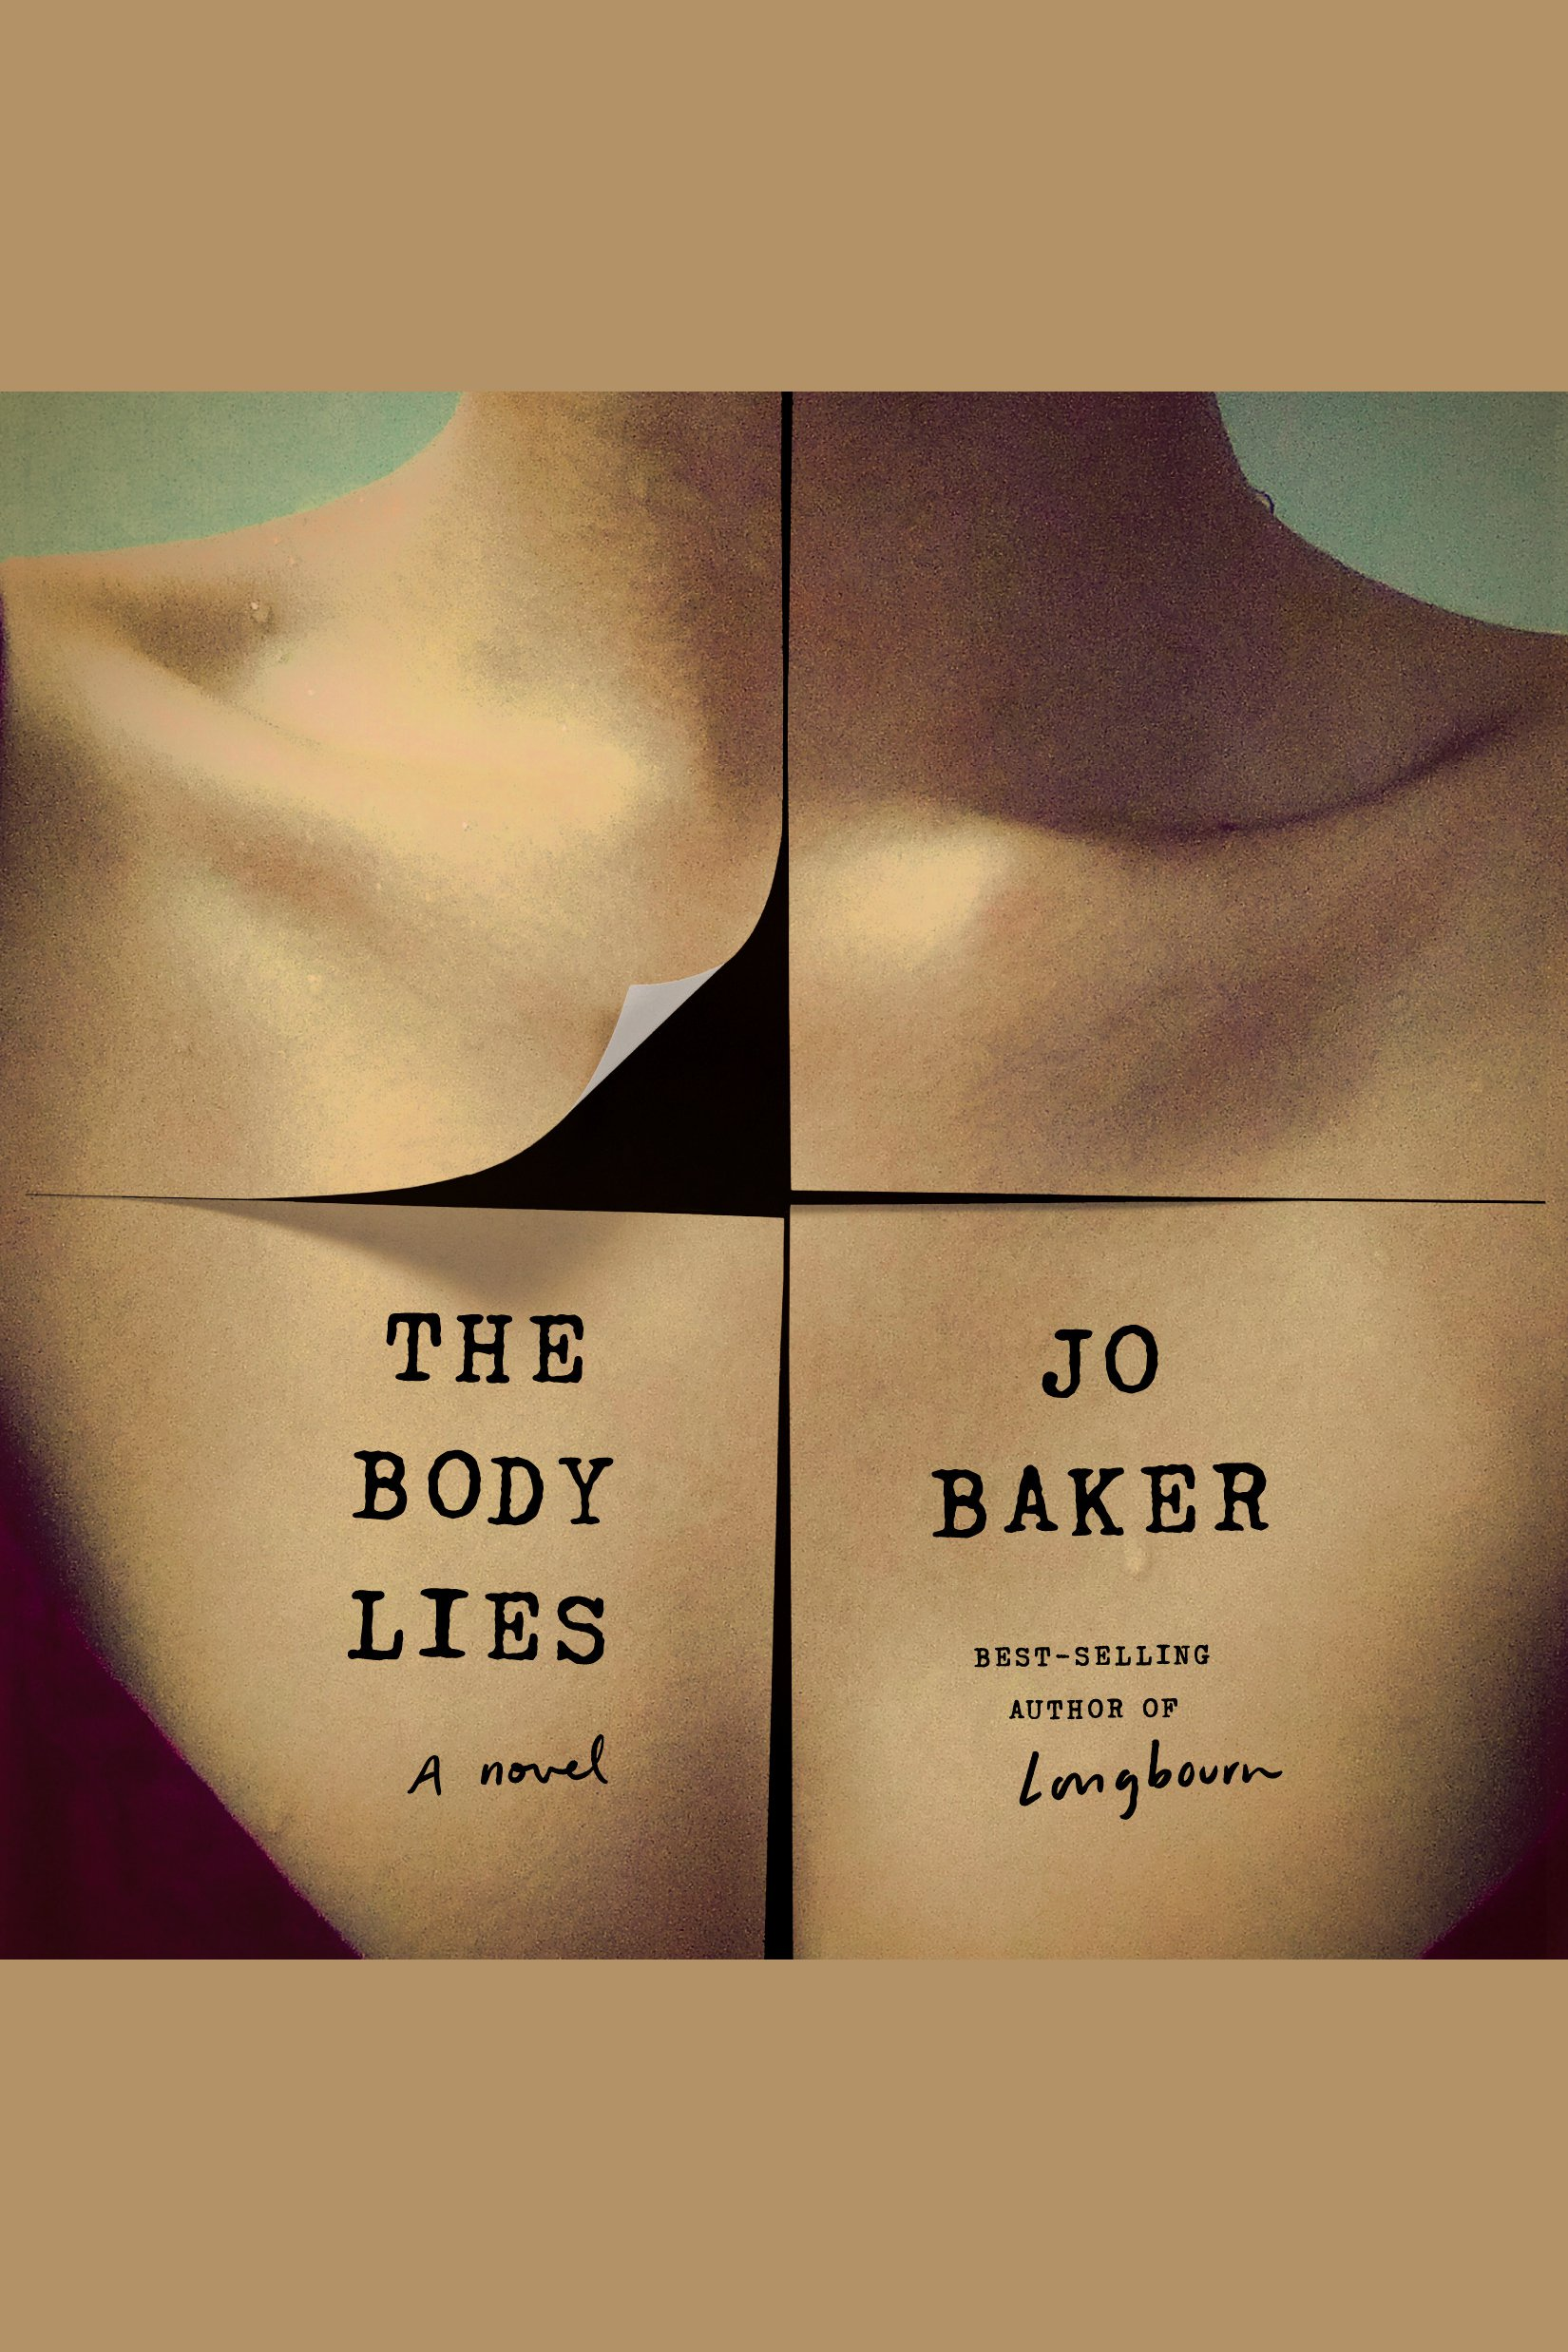 Body Lies, The A novel